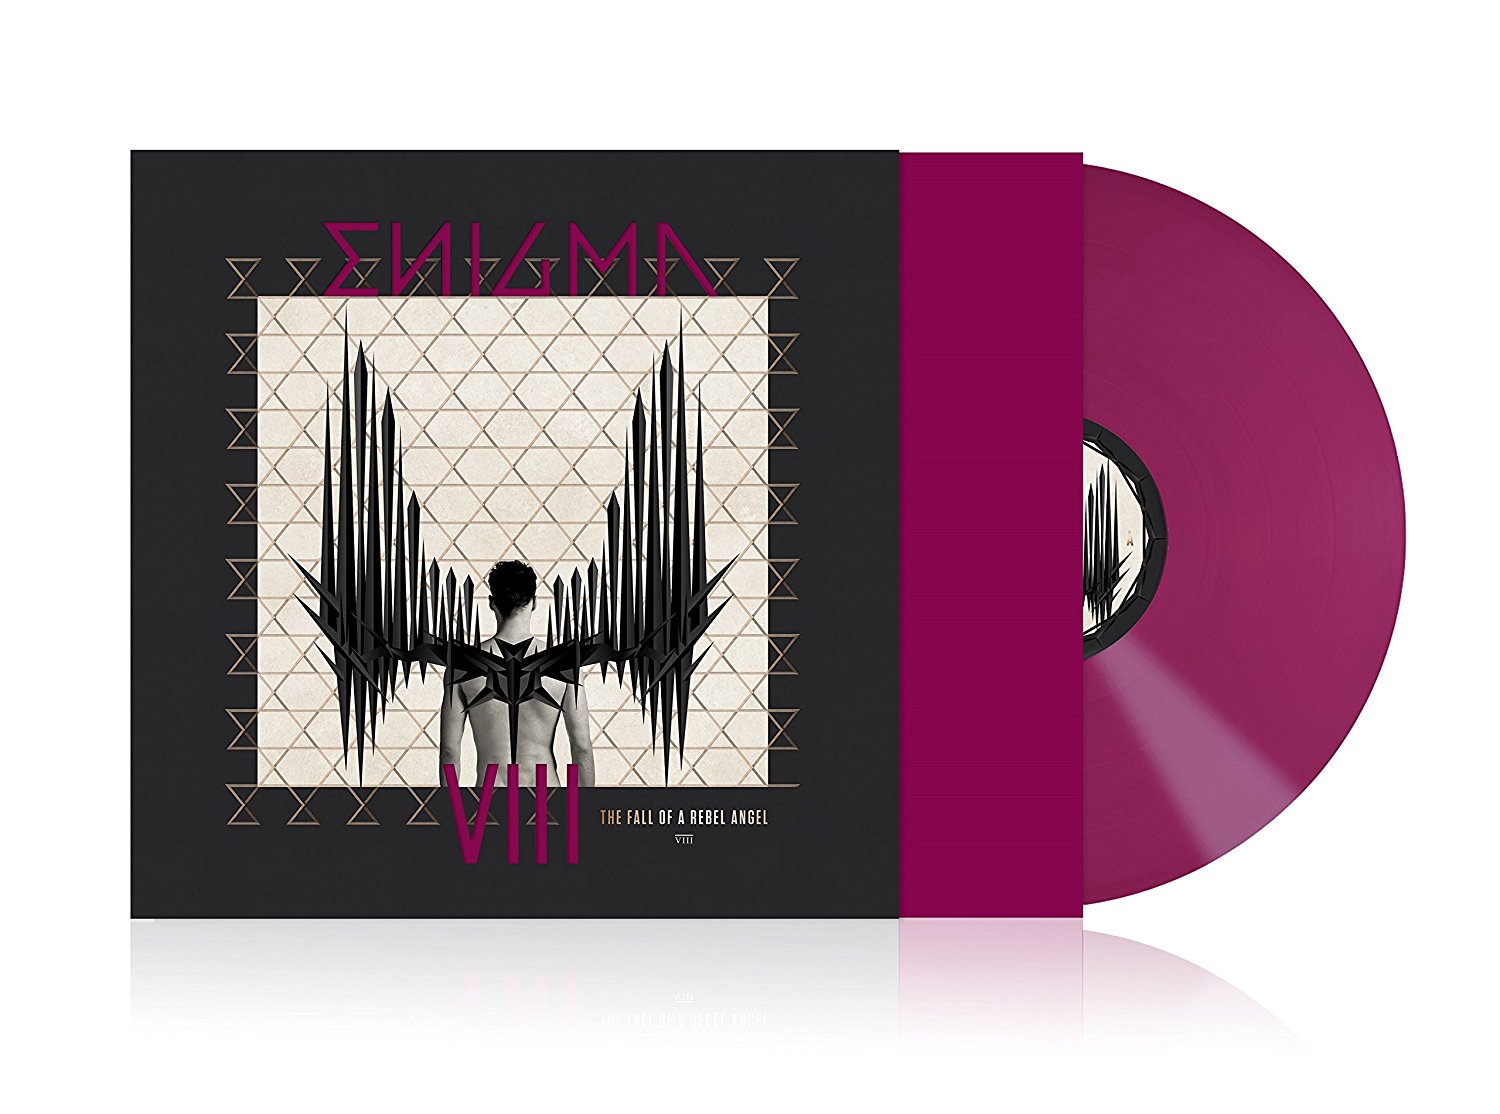 Enigma Enigma. The Fall Of A Rebel Angel (VIII) (LP) enigma enigma the platinum collection 2 cd